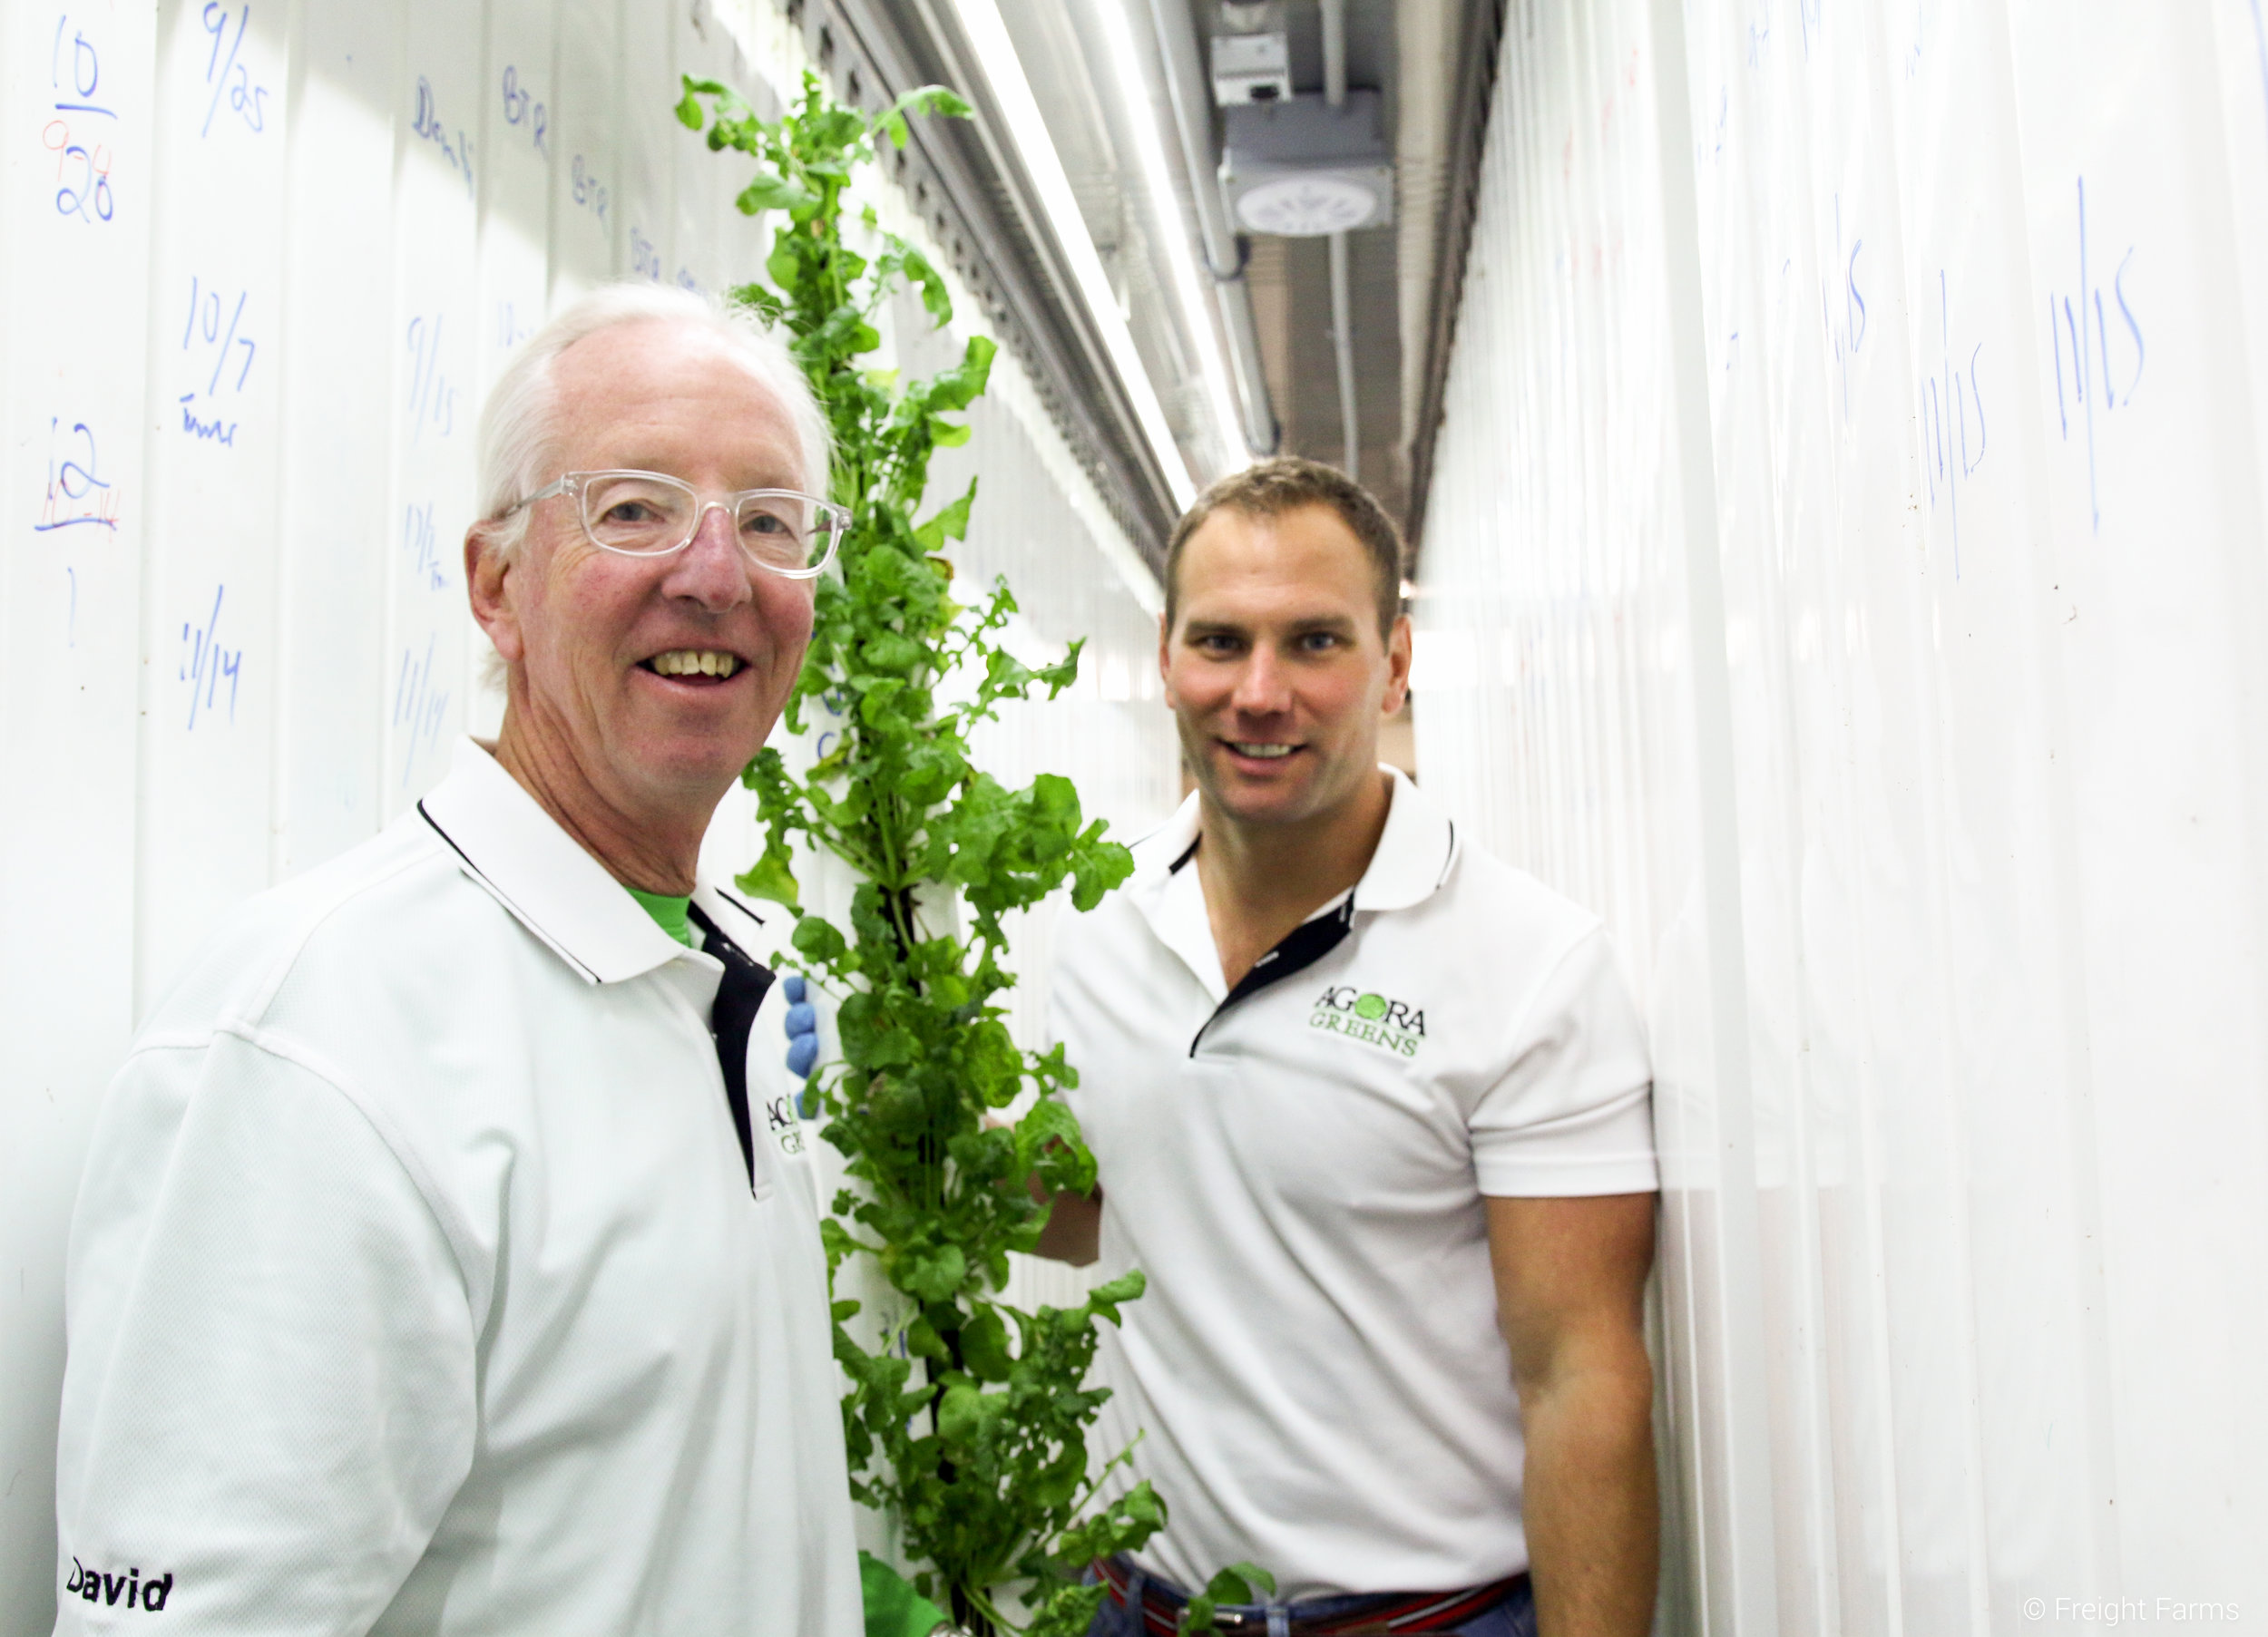 David and Ian with a column of spicy arugula.